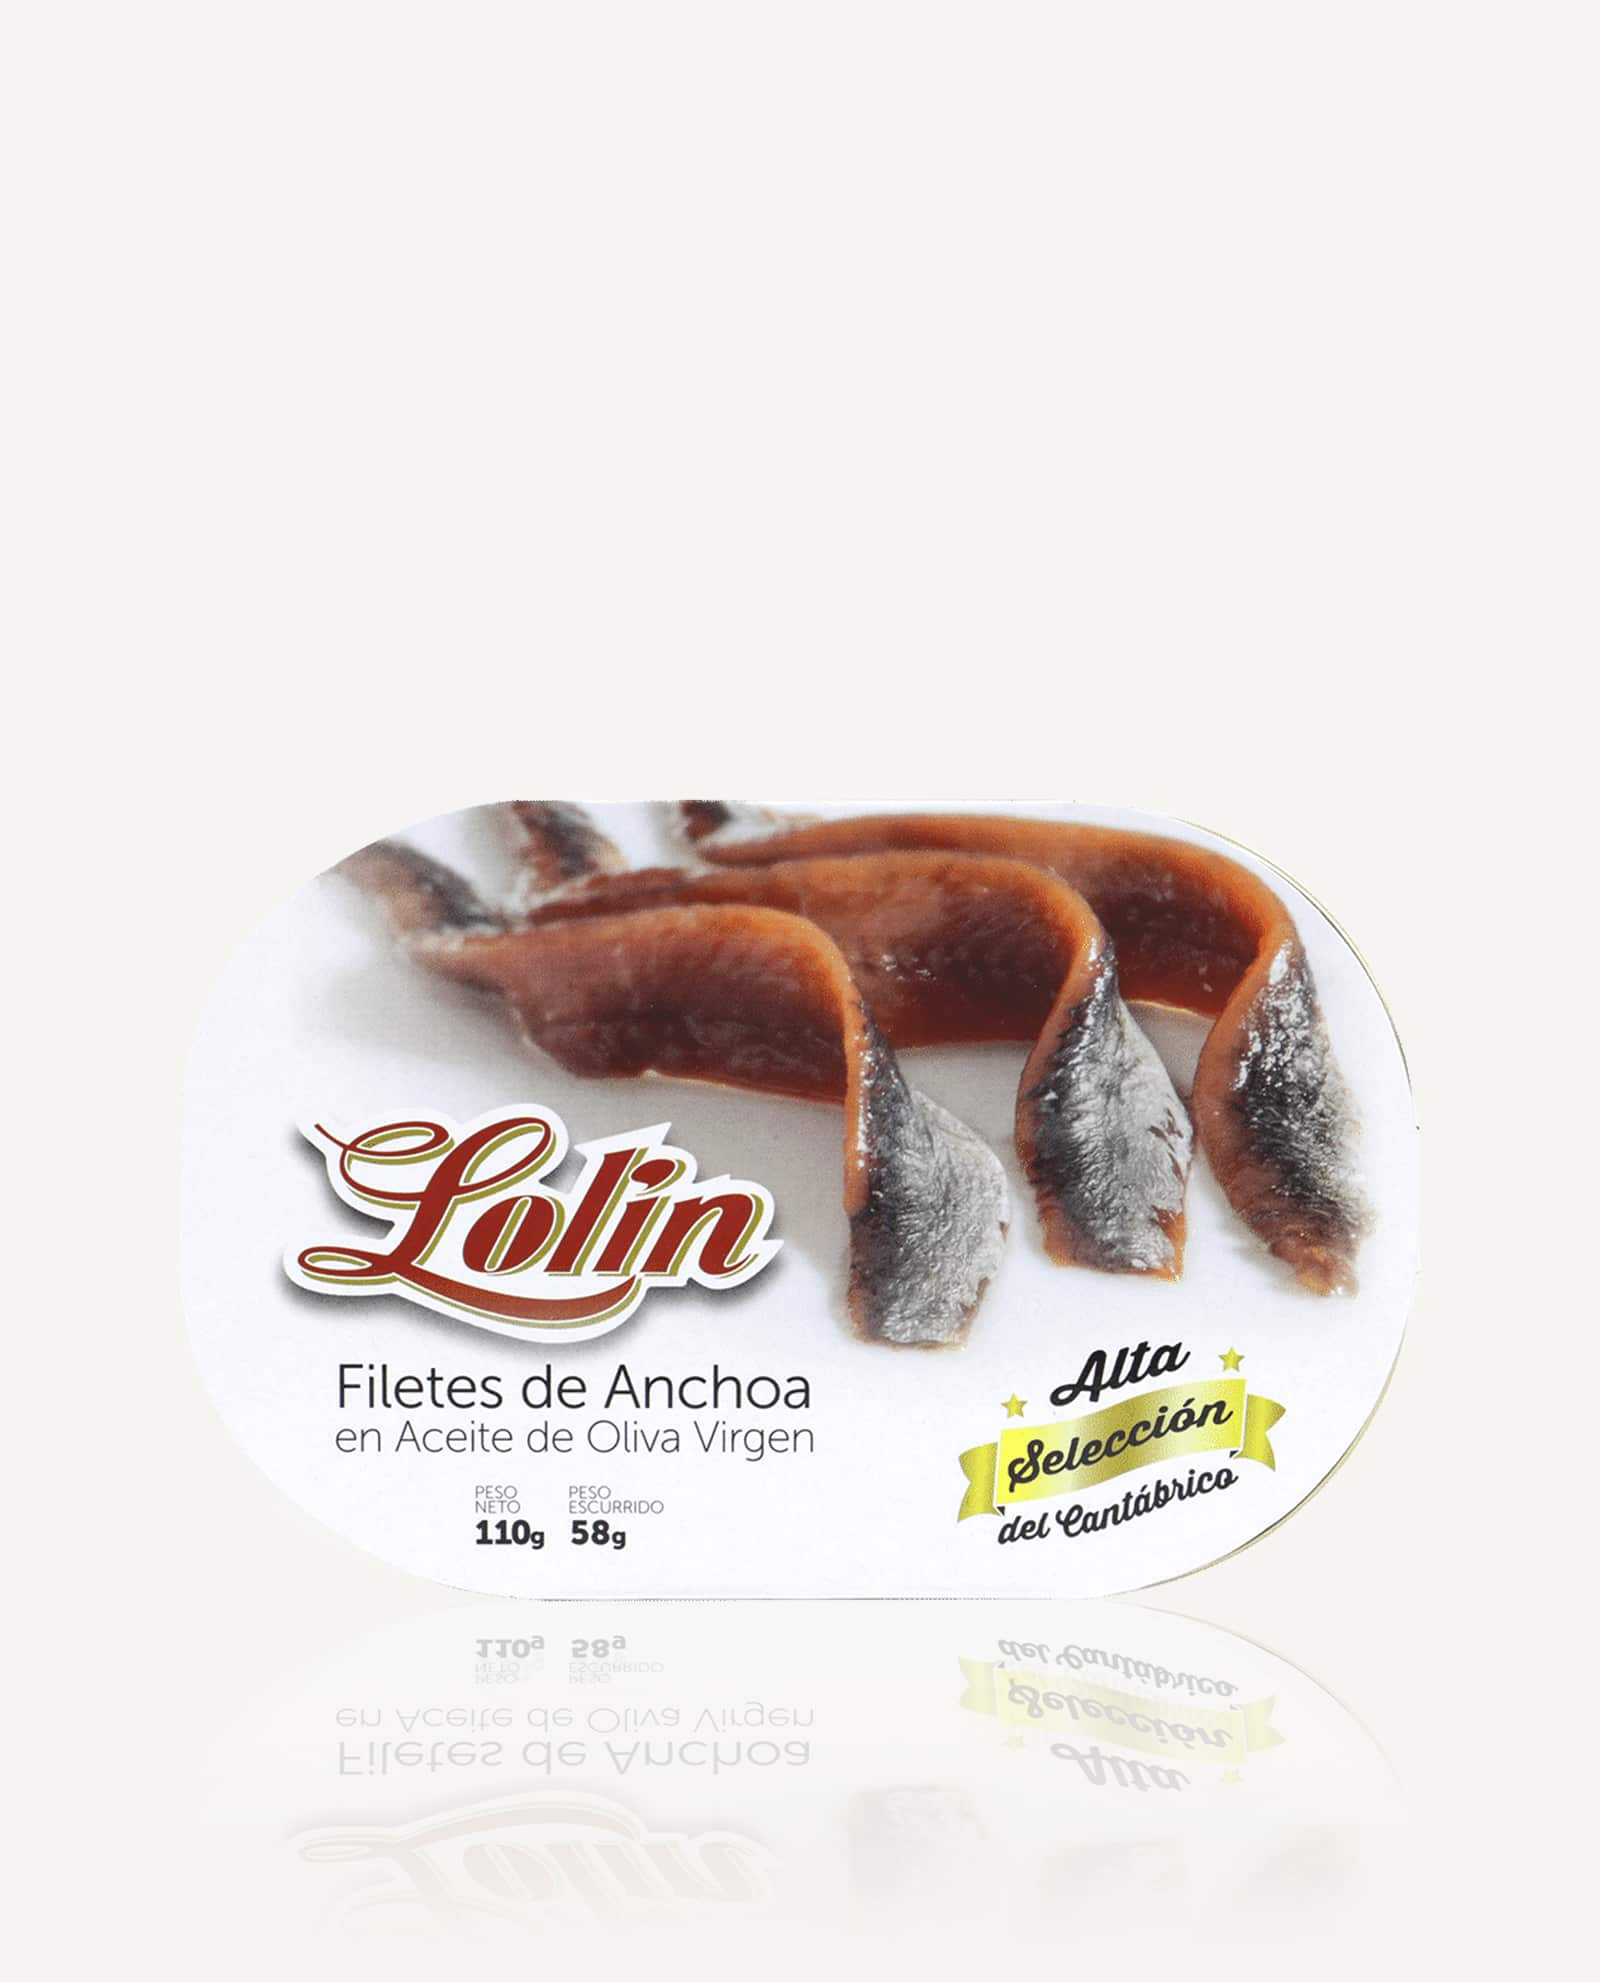 Filetes de anchoas Lolin en aceite de oliva 110g